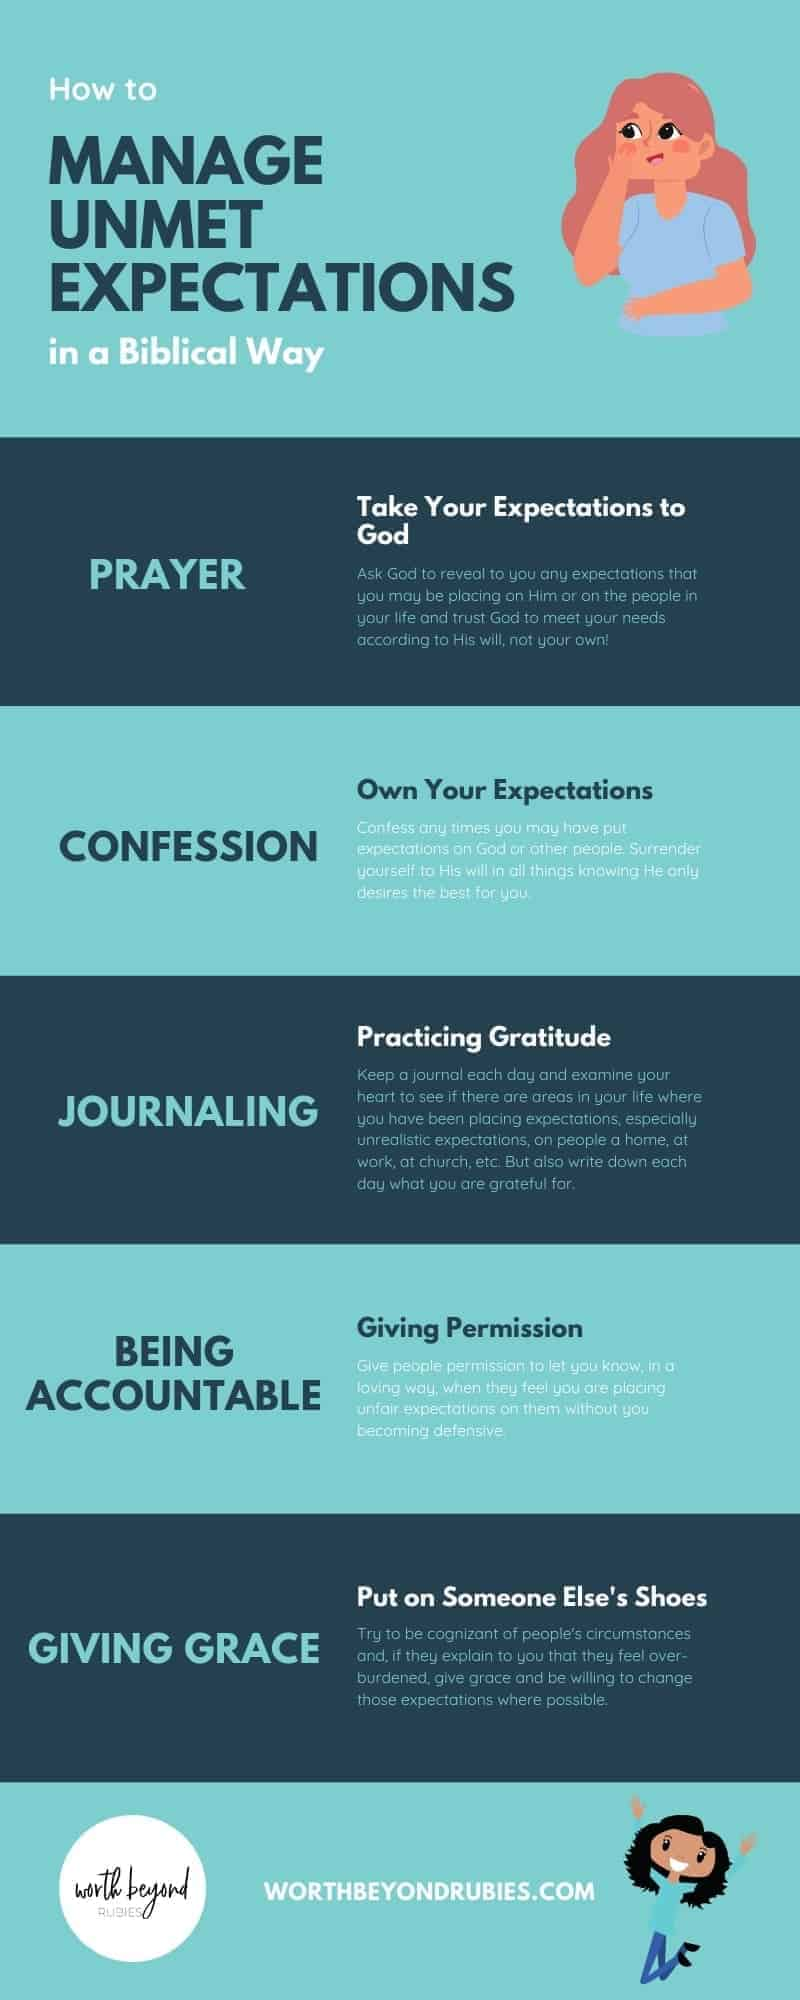 An infographic with 5 ways to manage unmet expectations